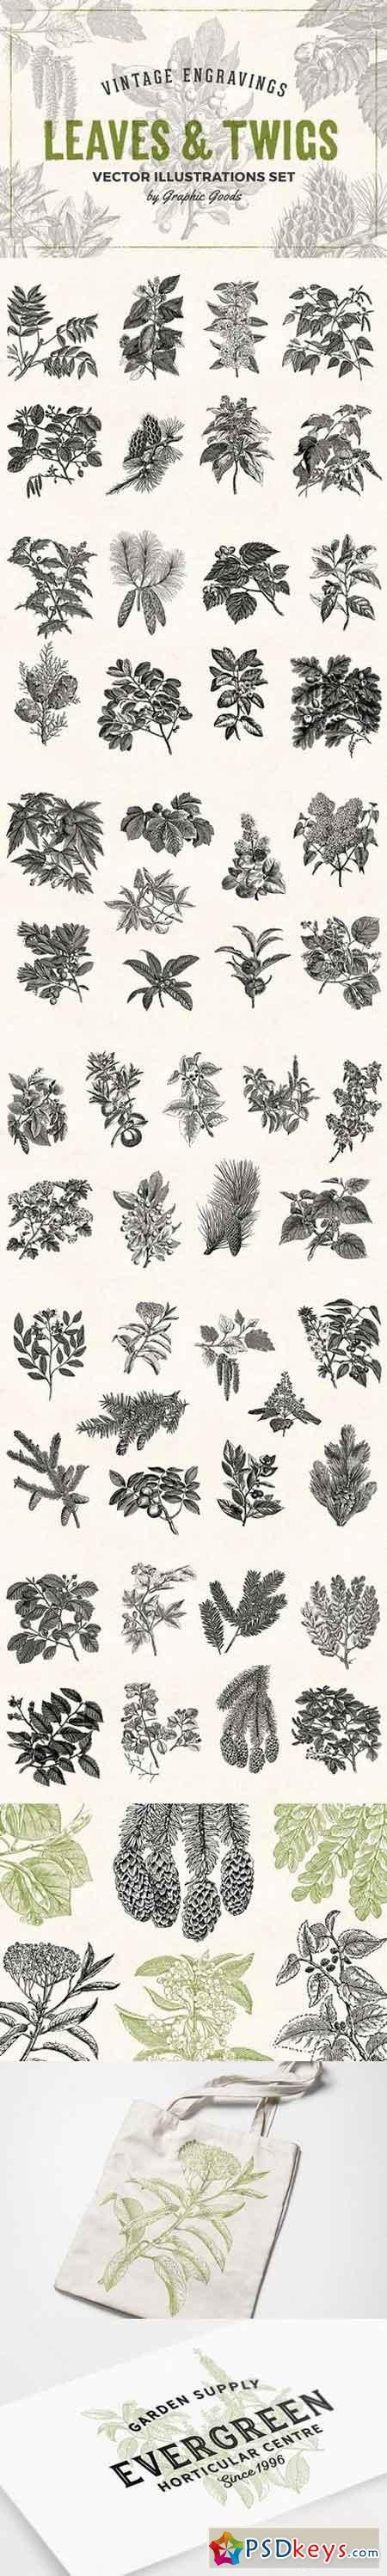 Leaves & Twigs Vintage Illustrations 1633688